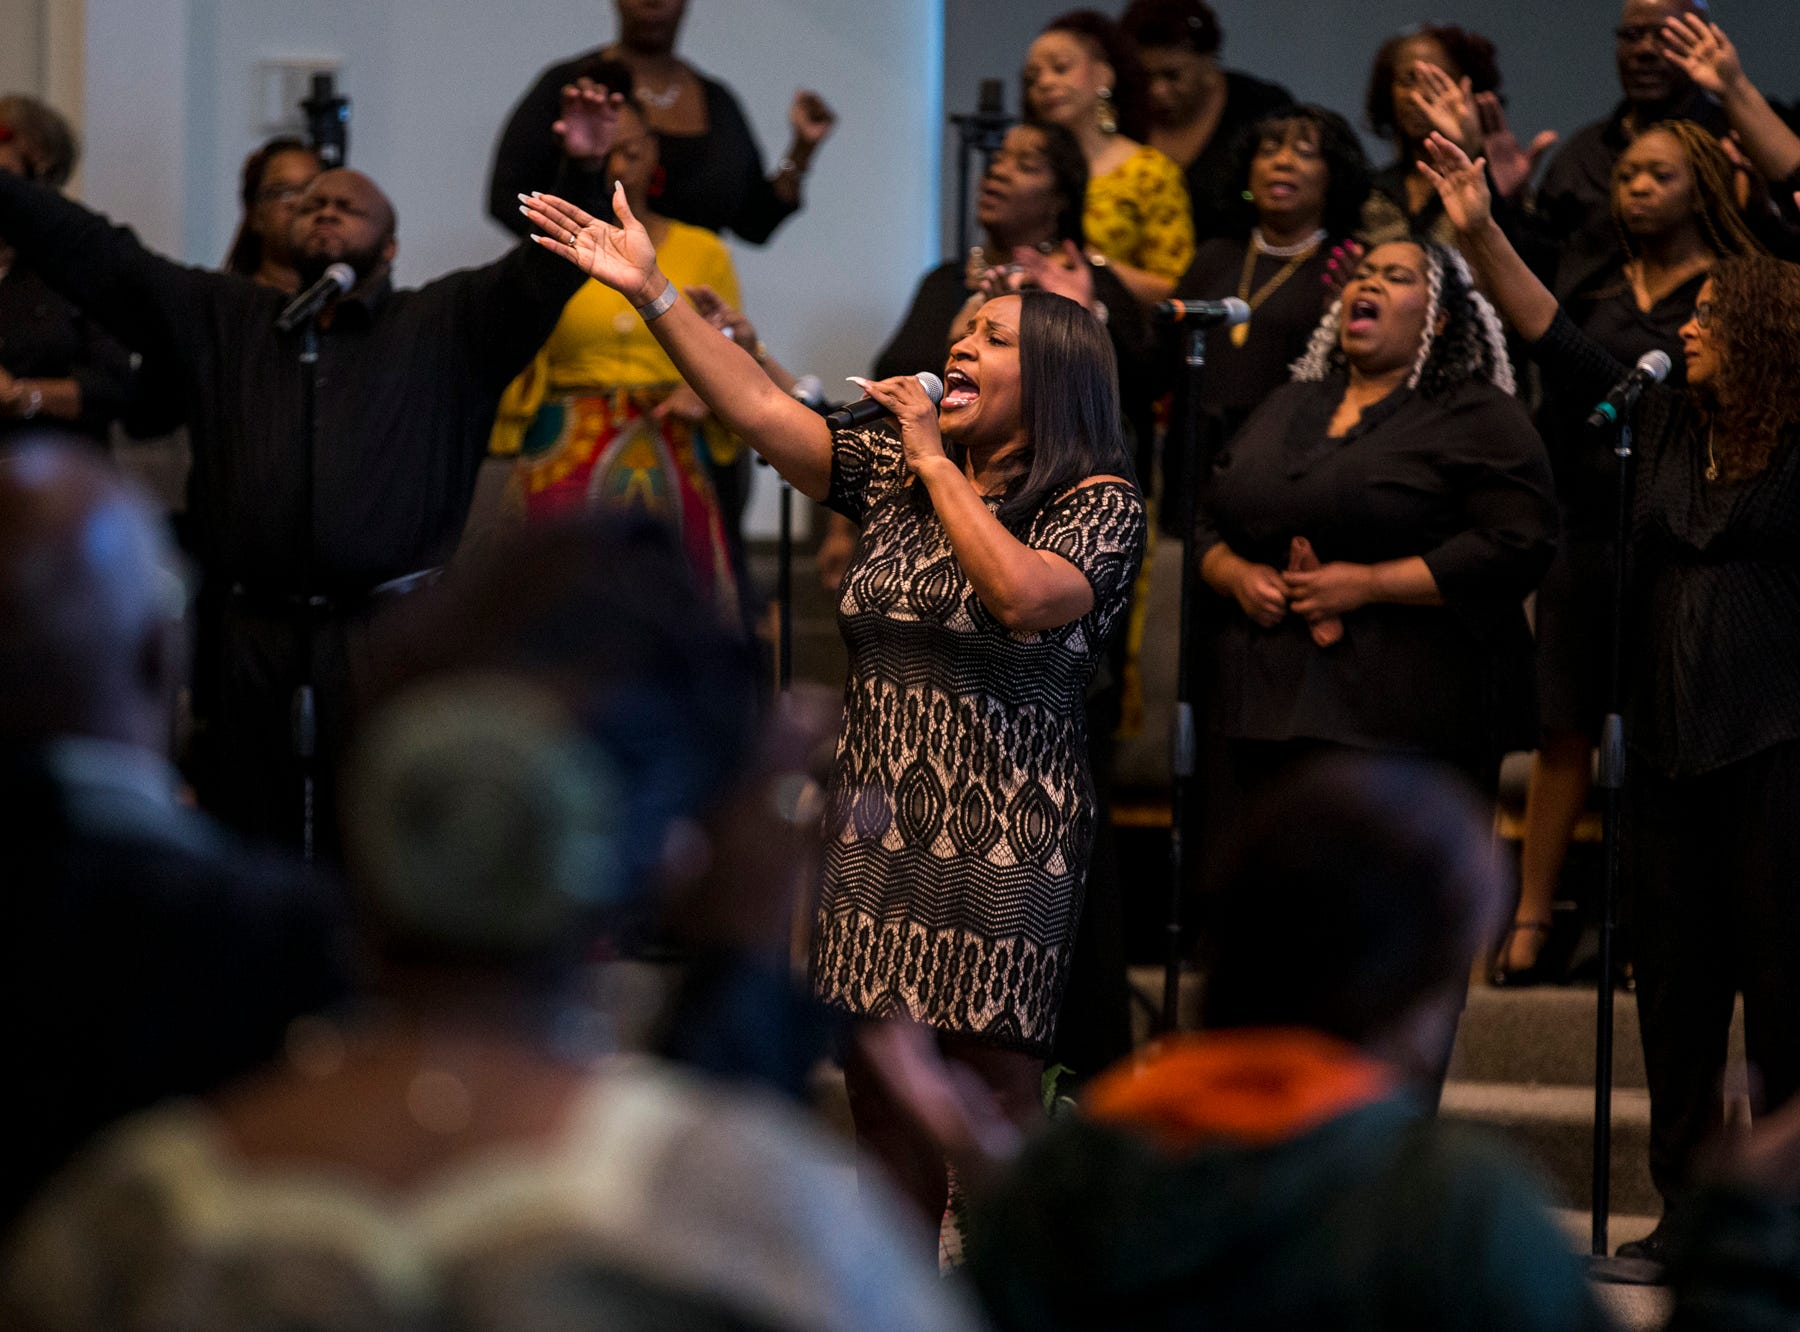 The choir sings during the 7:30 a.m. service on Feb. 24, 2019, at Pilgrim Rest Baptist Church in Phoenix. Pastor Terry Mackey was appointed to replace the late Bishop Alexis Thomas.